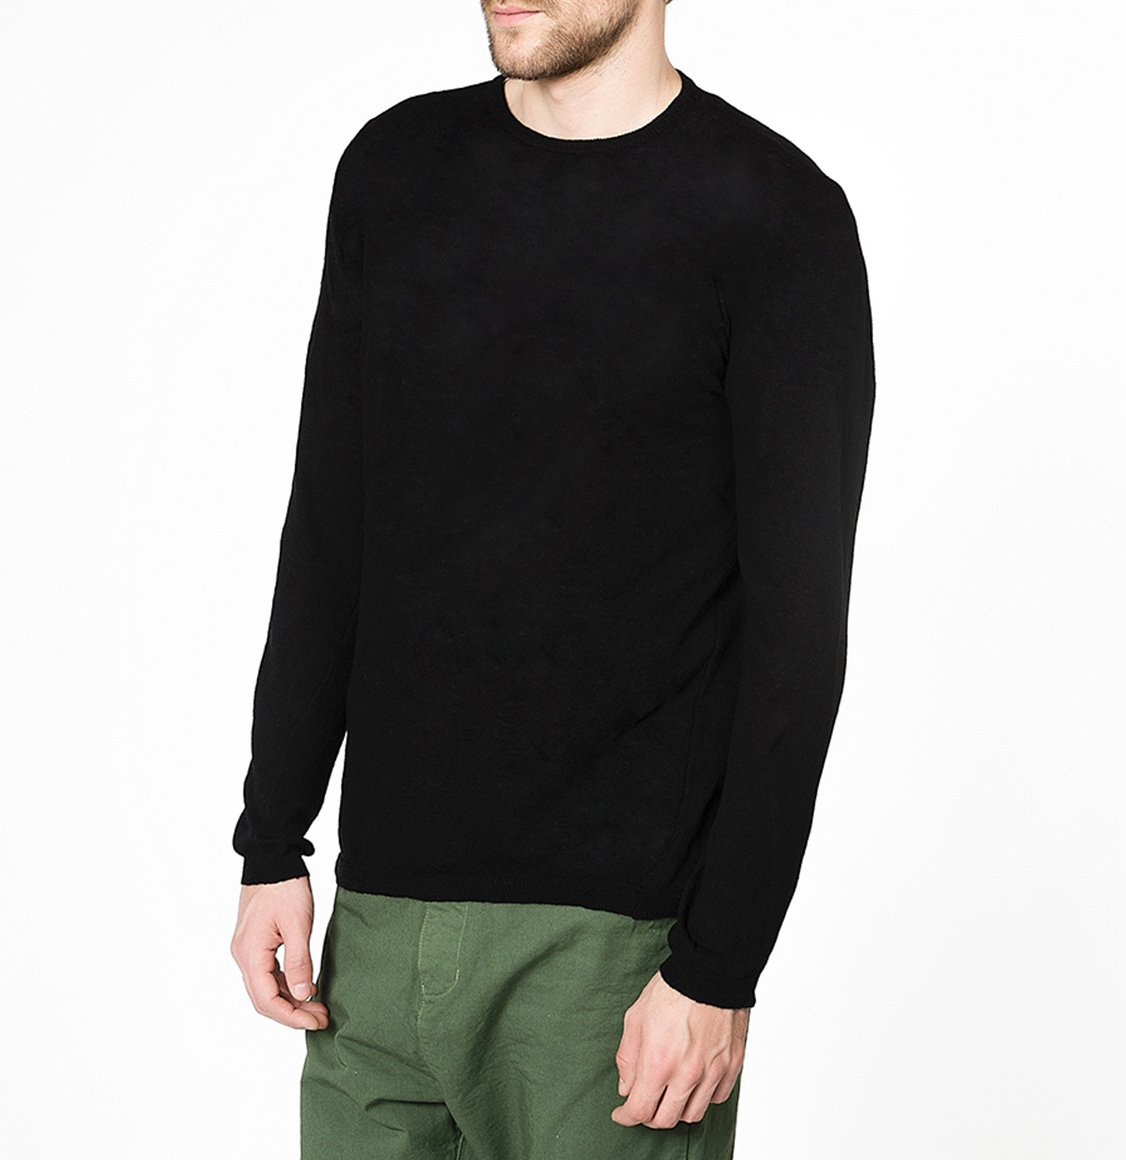 Linen Blend Crew Neck Knitted Sweater Black